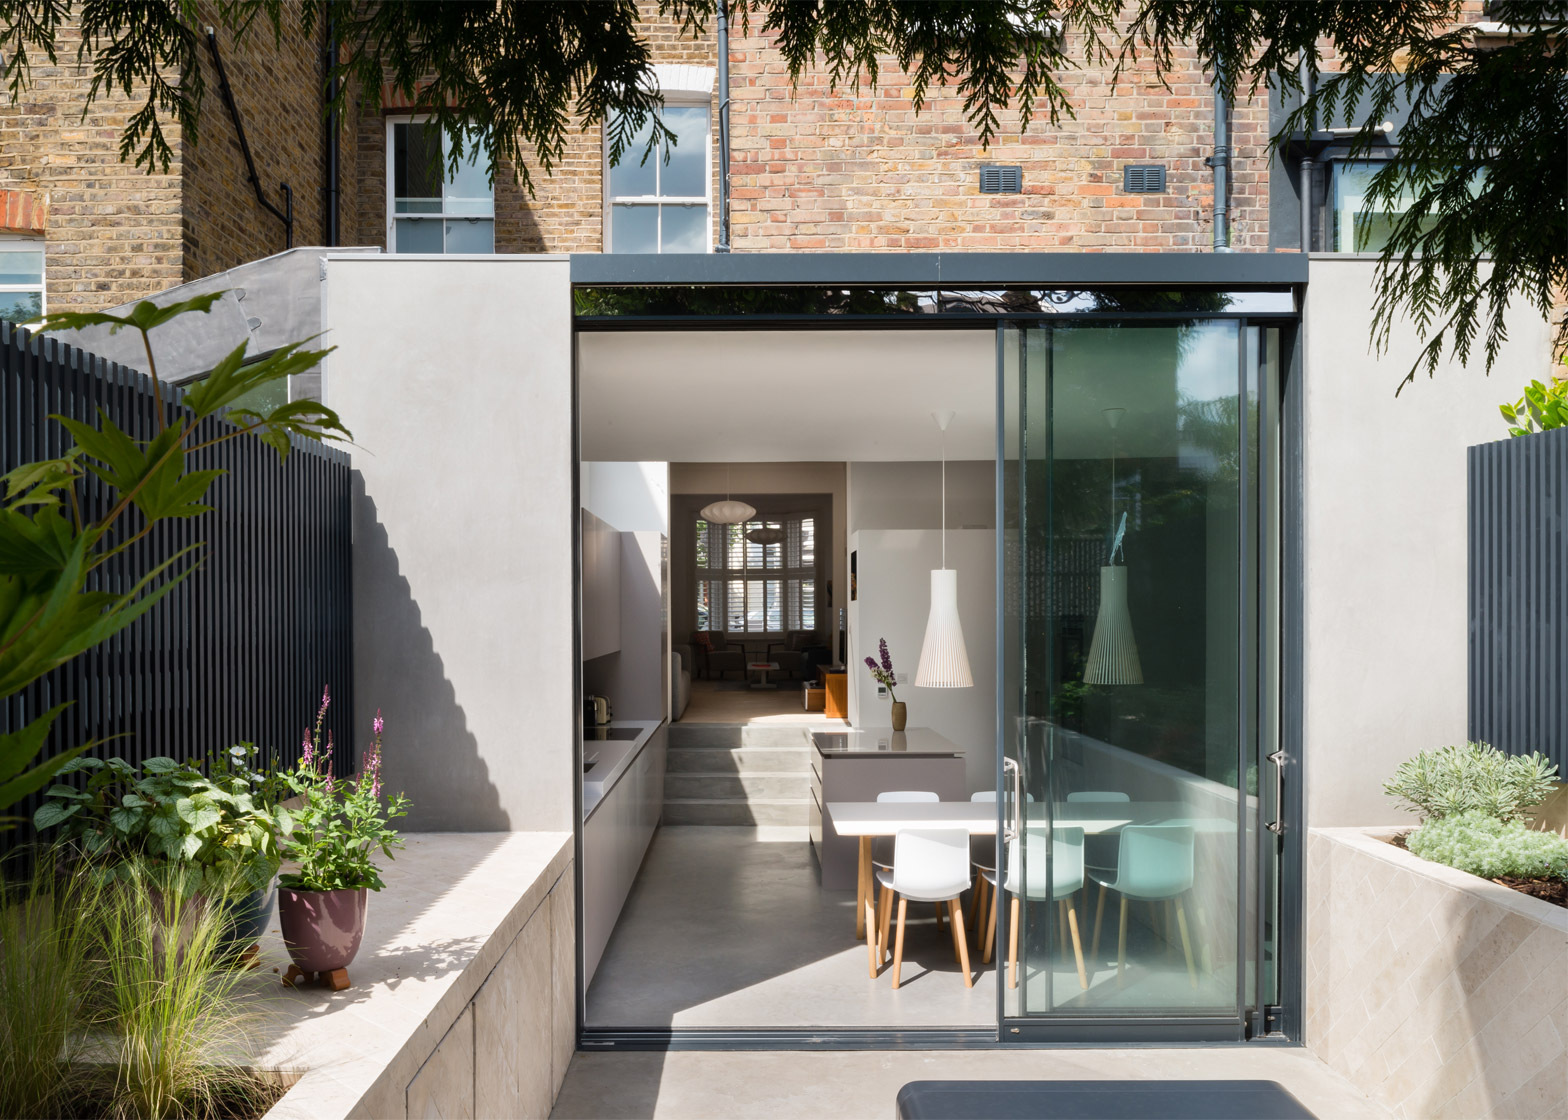 Calabria Road by Architecture for London